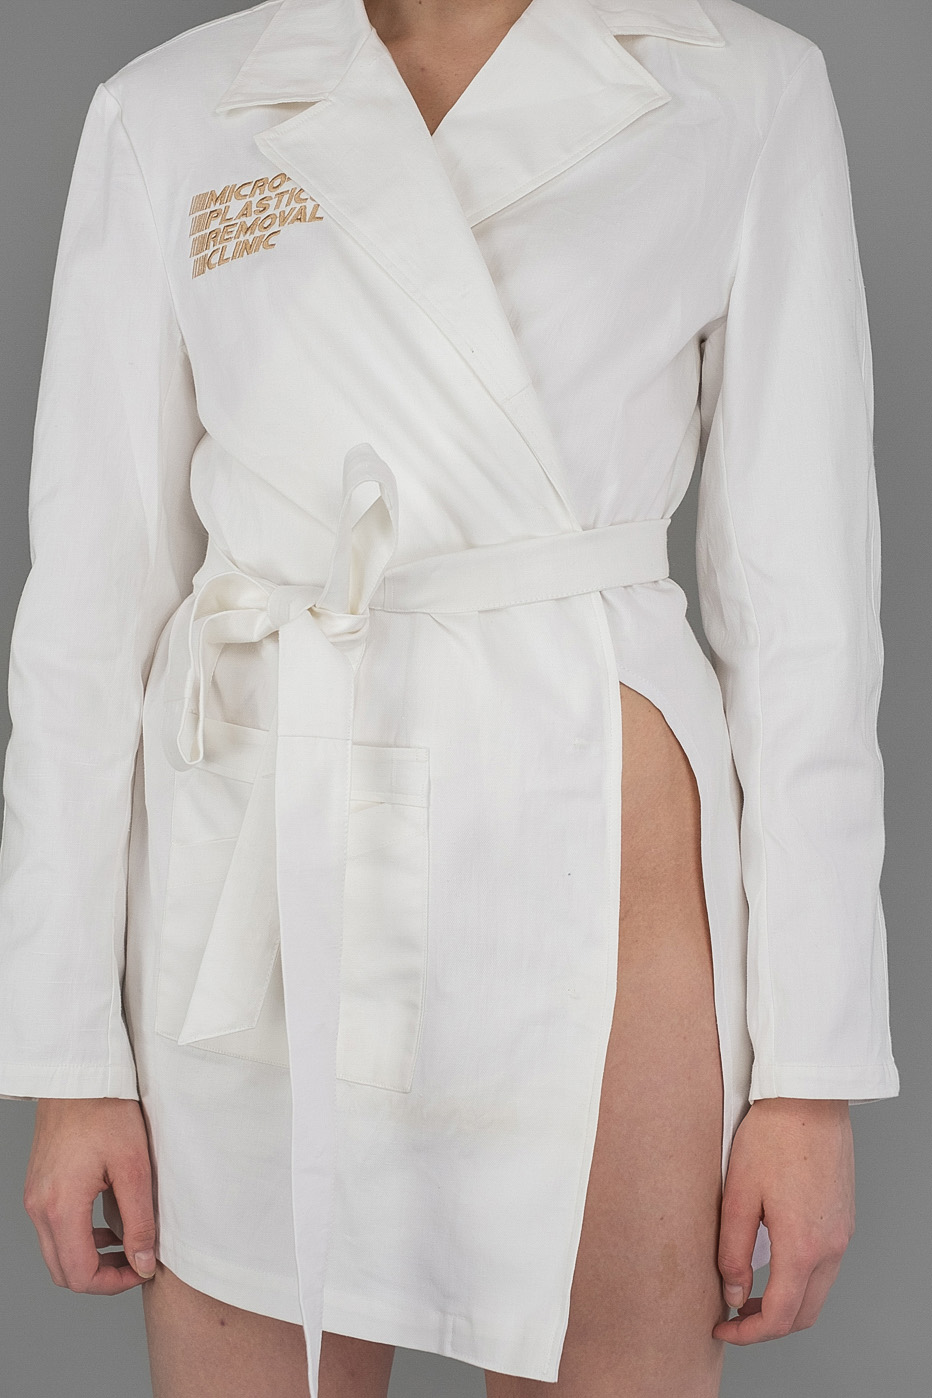 Removal Clinic Jacket 5